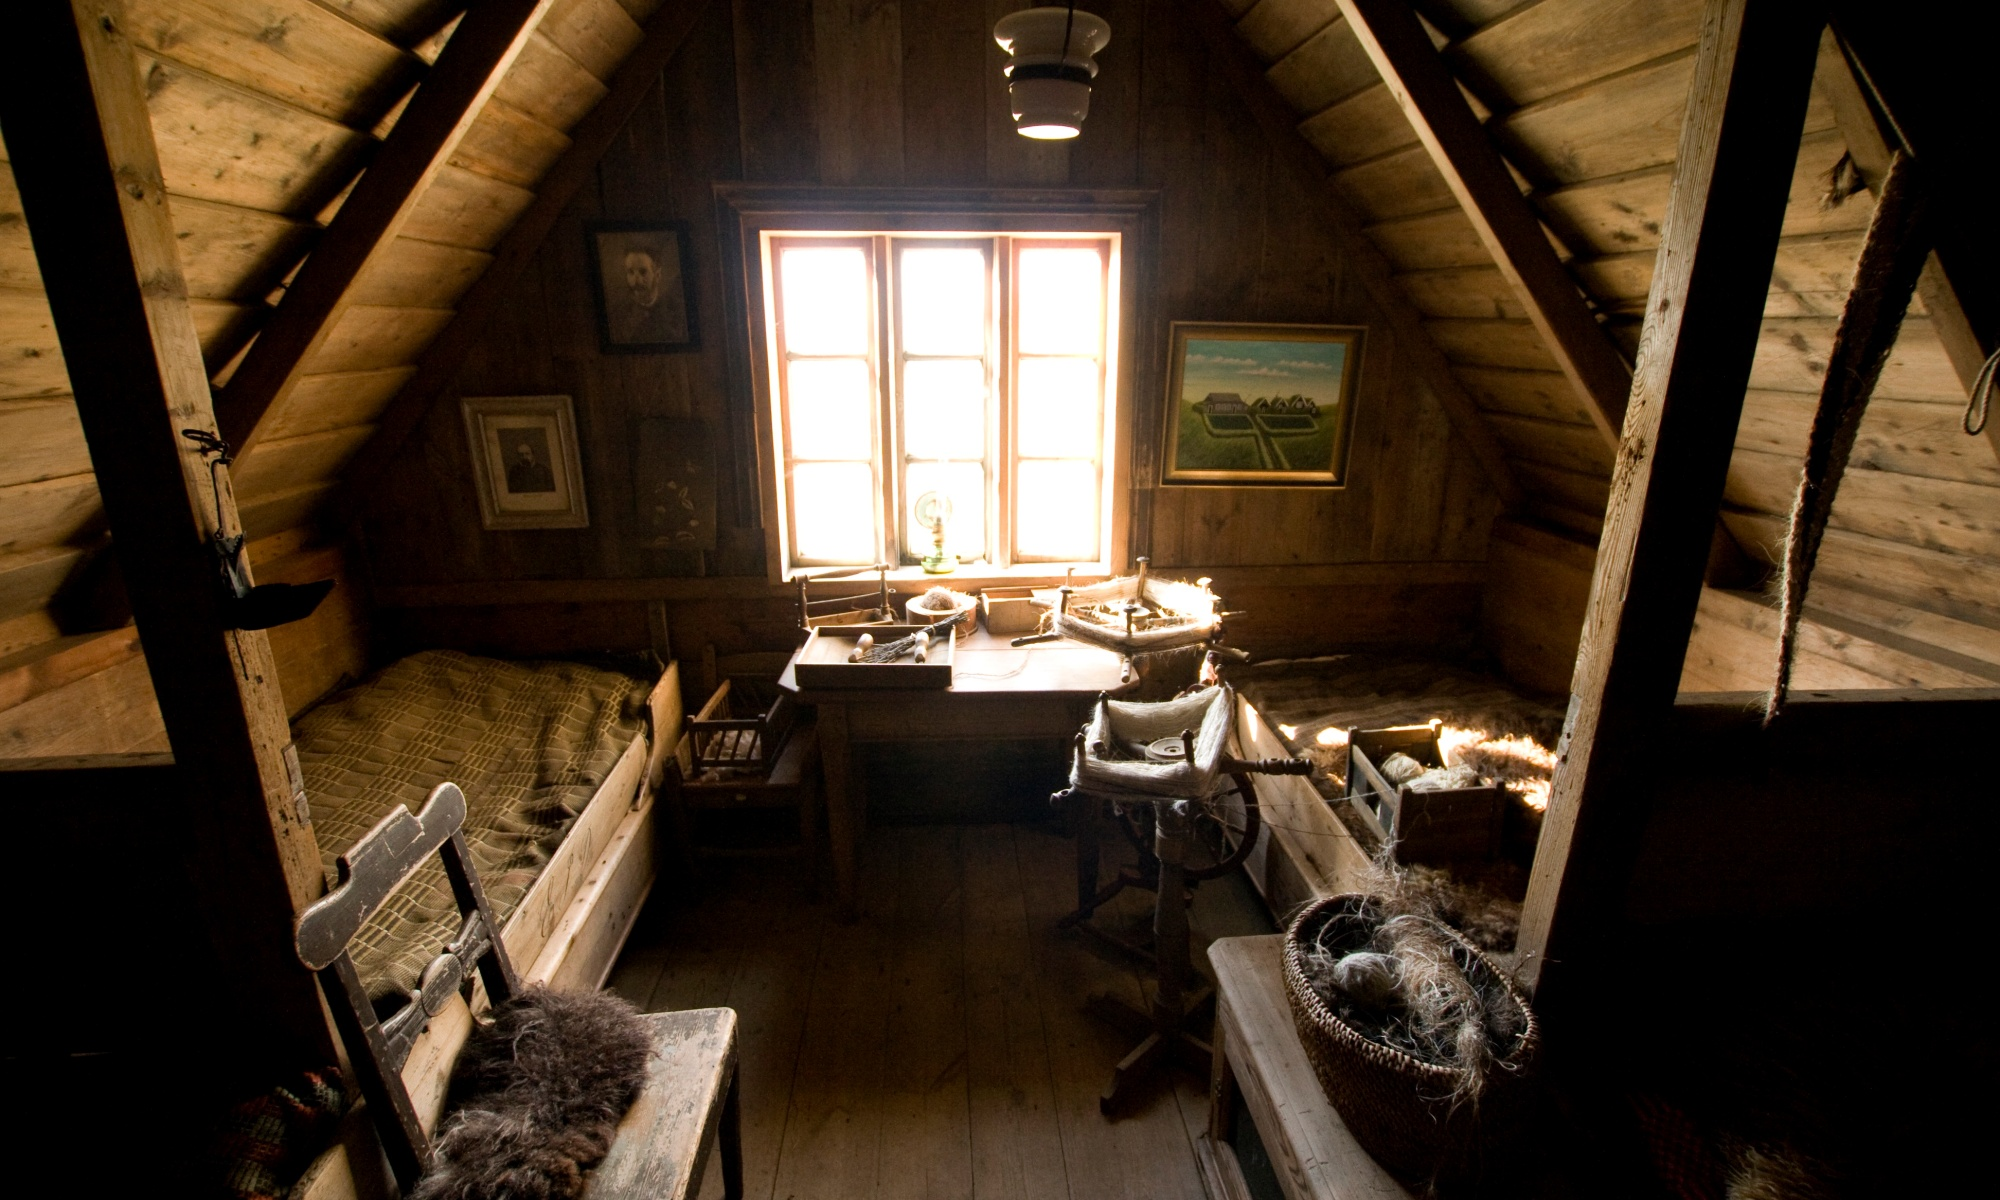 Attribution By Ben Husmann from Chicago, USA (Attic bedroom Uploaded by Yarl) [CC BY 2.0 (http://creativecommons.org/licenses/by/2.0)], via Wikimedia Commons